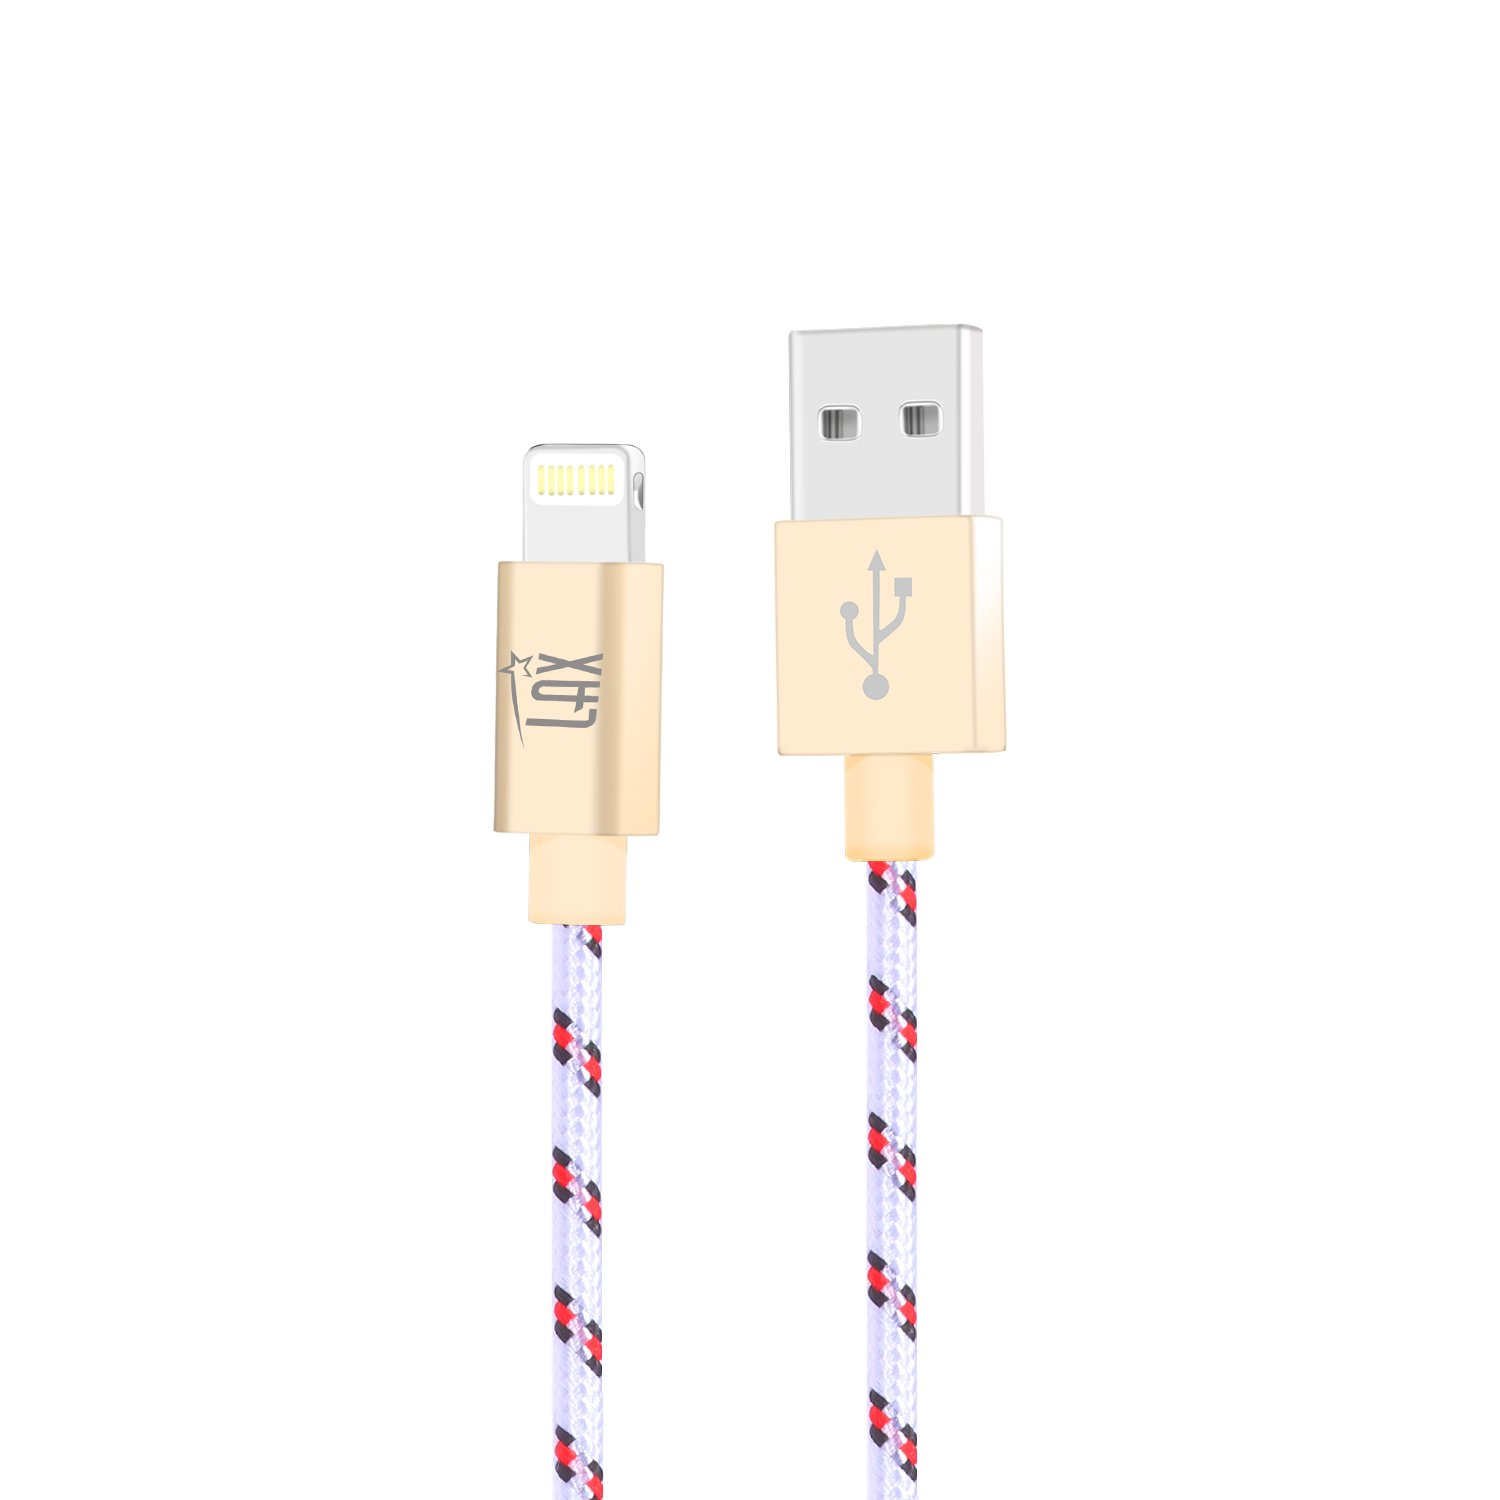 LAX Gadgets iPhone Charger Lightning Cable - MFi Certified Durable Braided Apple Lightning USB Cord for iPhone 11/11 Pro Max/XS Max/X/iPad, iPod & More